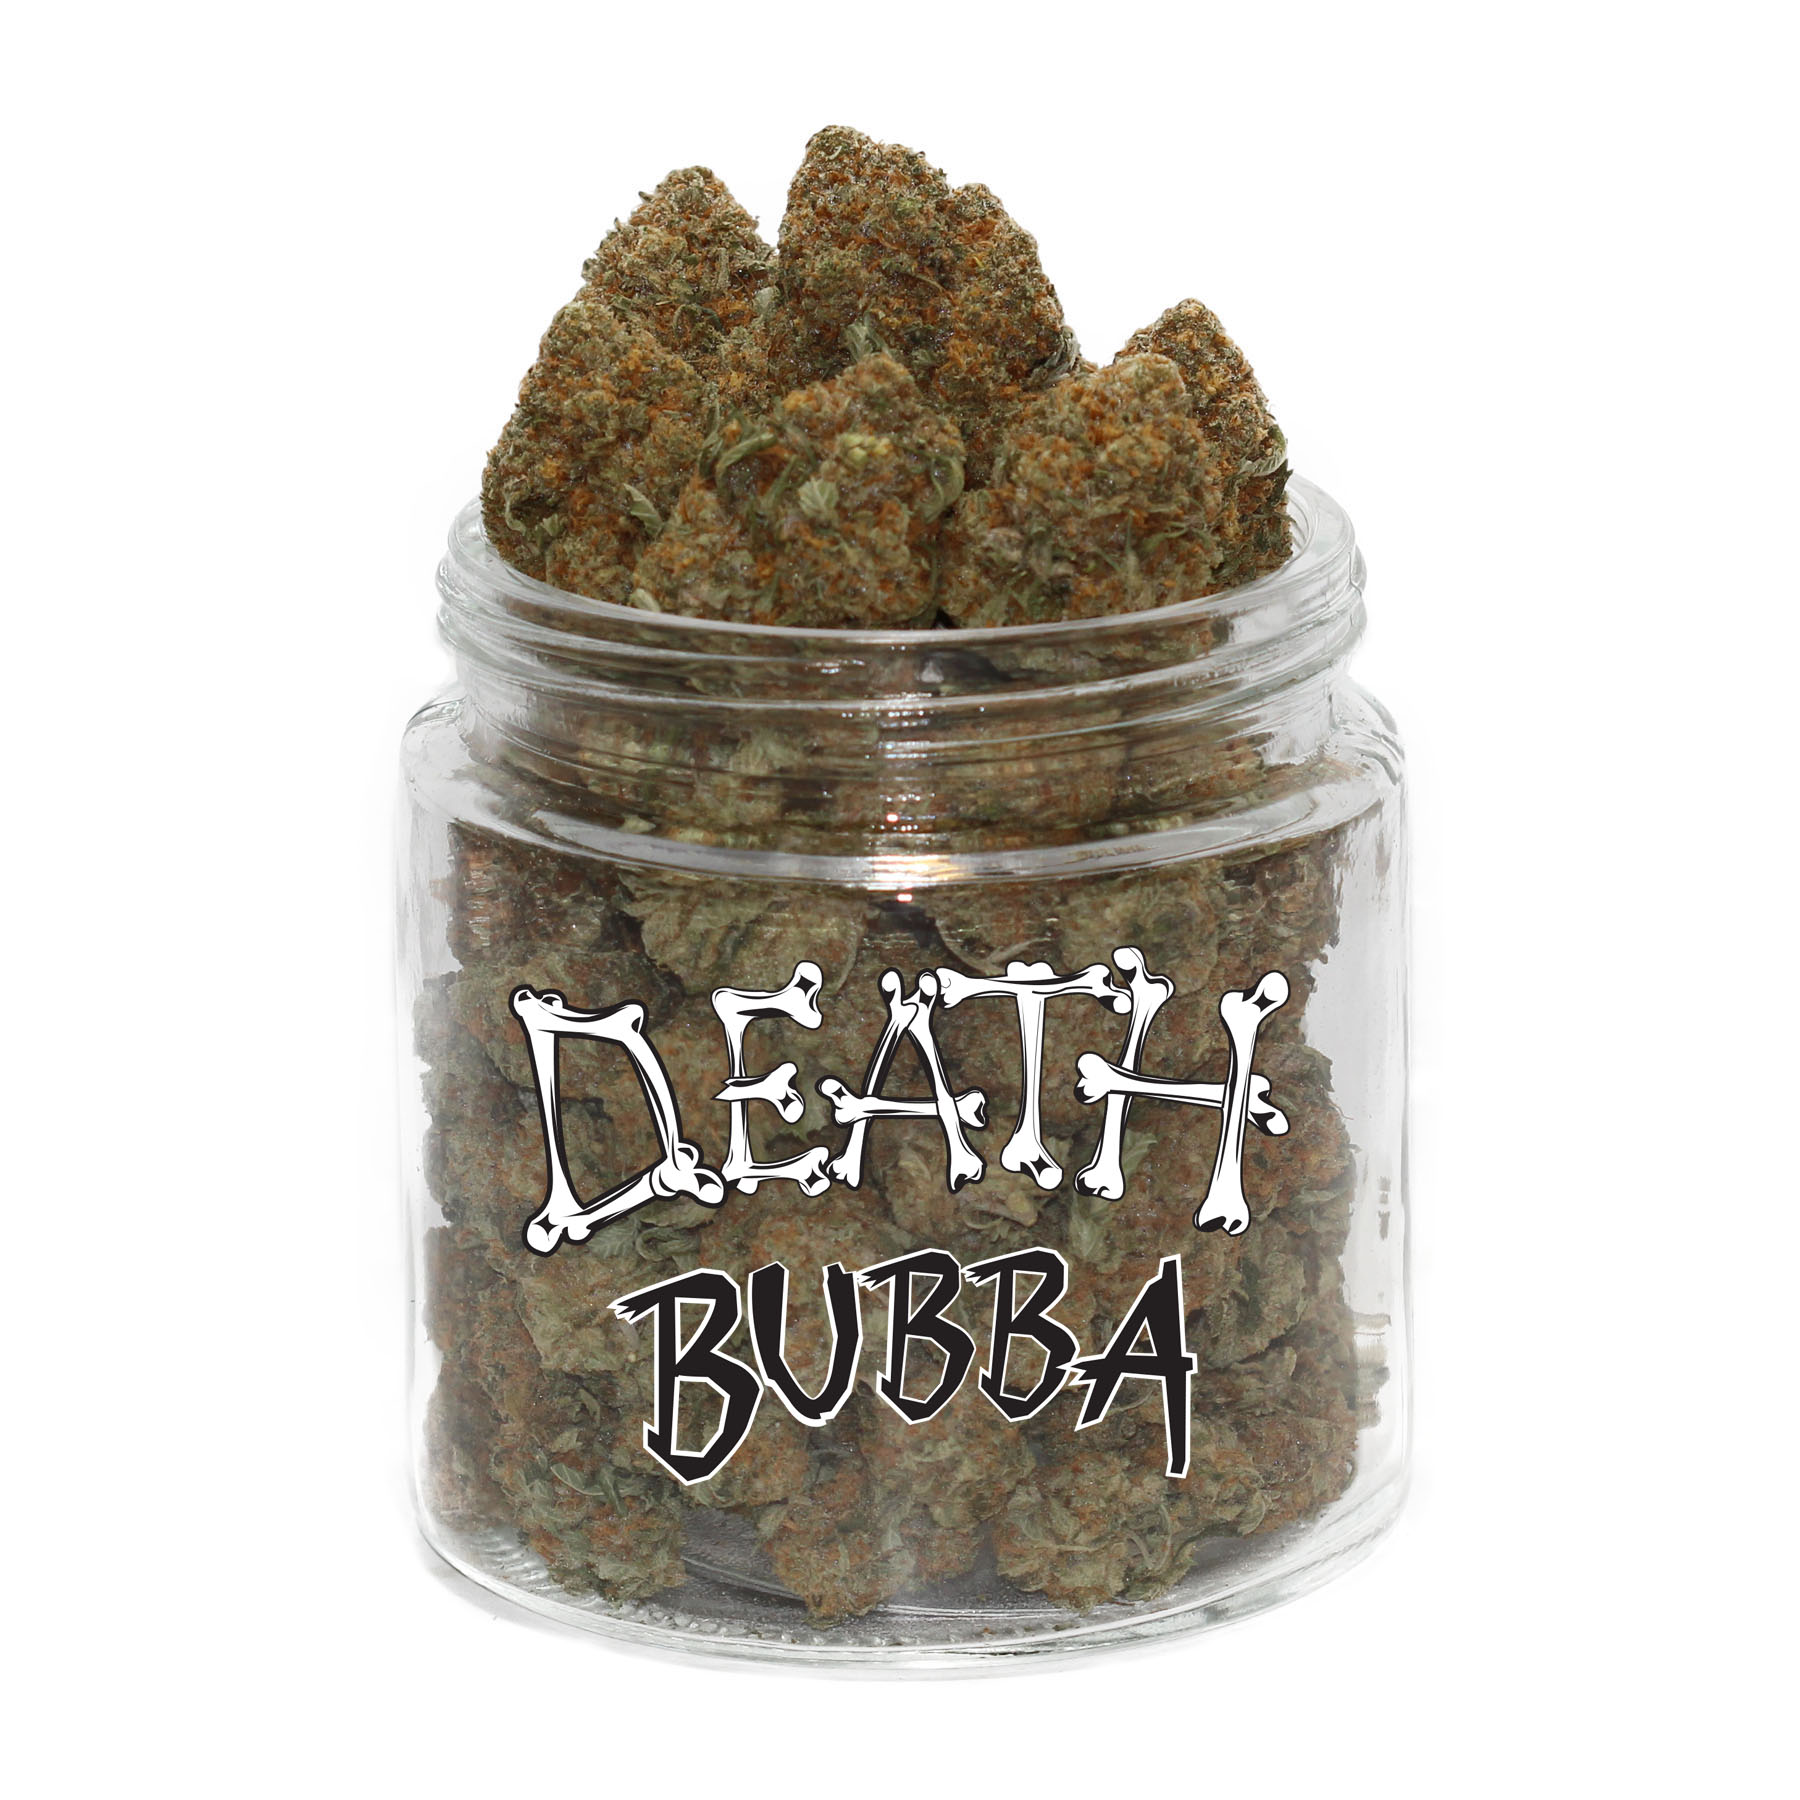 Death Bubba by Get Kush - Image © 2018 Get Kush. All Rights Reserved.